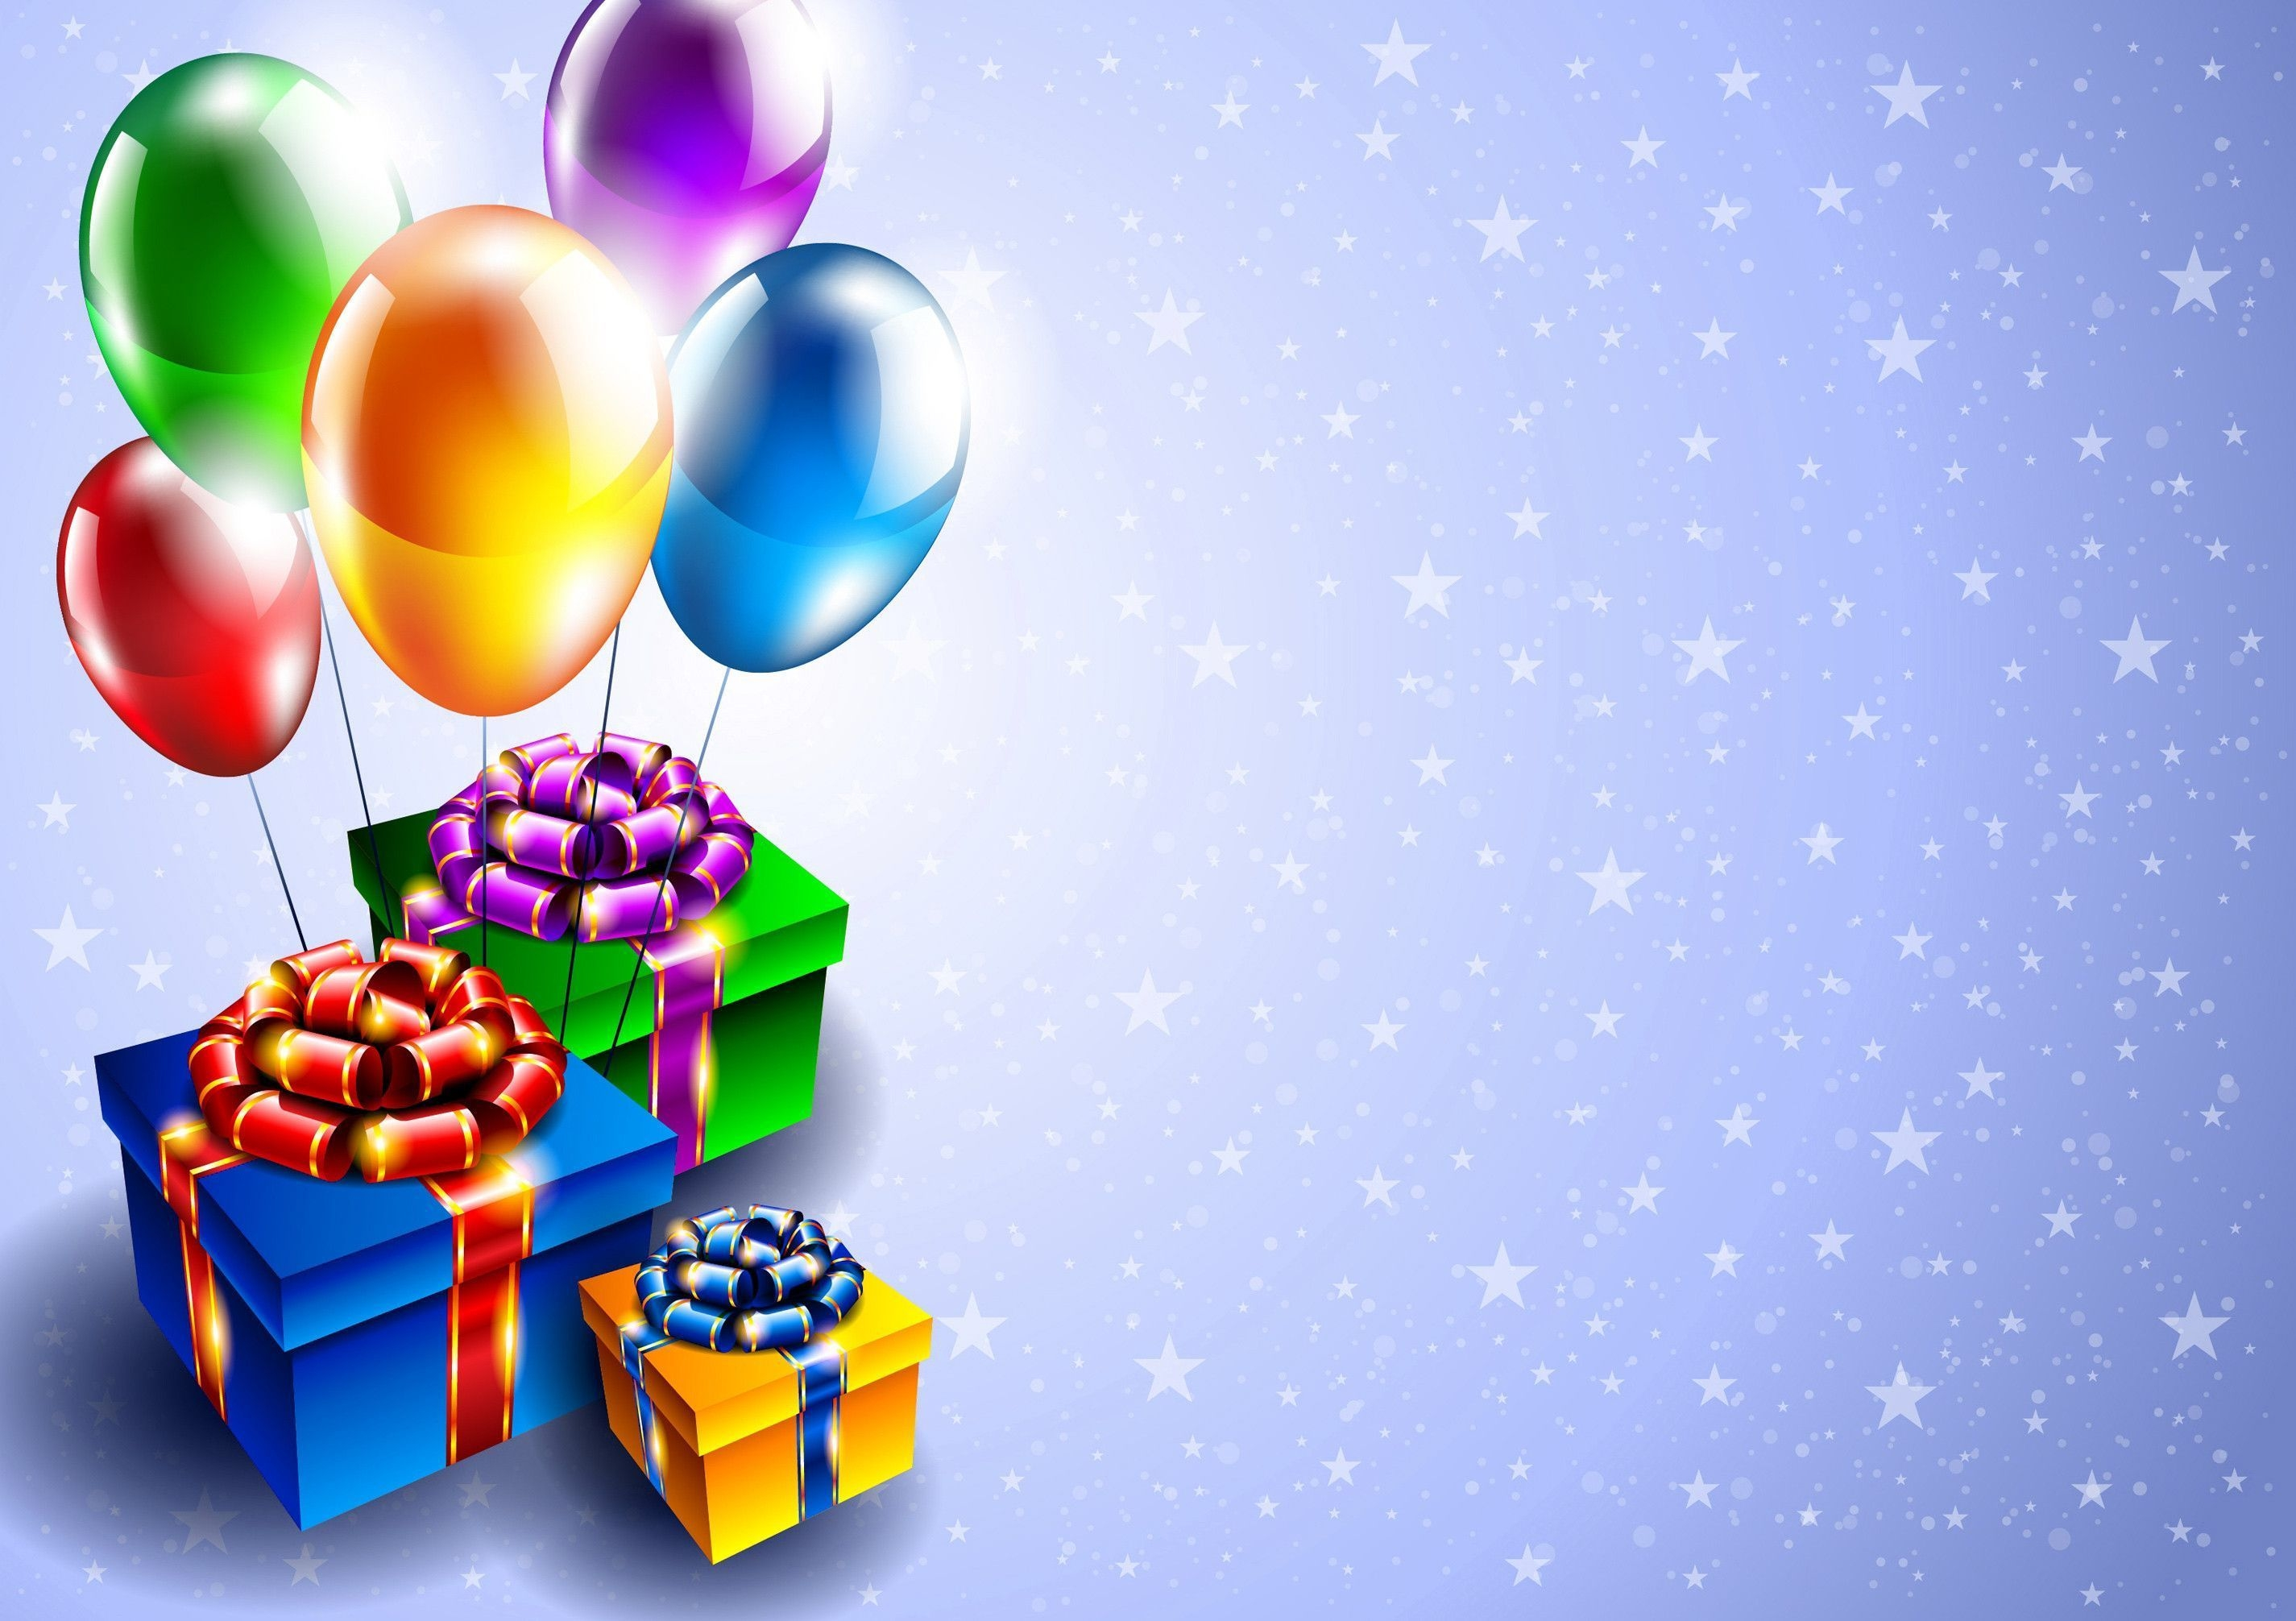 birthday background hd wallpapers ; HD-background-images-of-birthday-Download-Free-Birthday-Background-Images-Hd-The-Quotes-Land-for-wallpaper-wp6406142